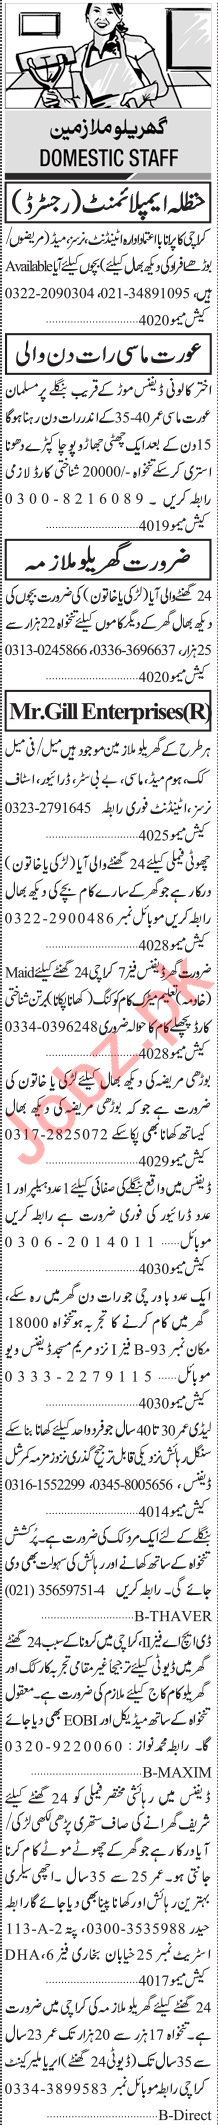 Jang Sunday Classified Ads 31st May 2020 for Domestic Staff